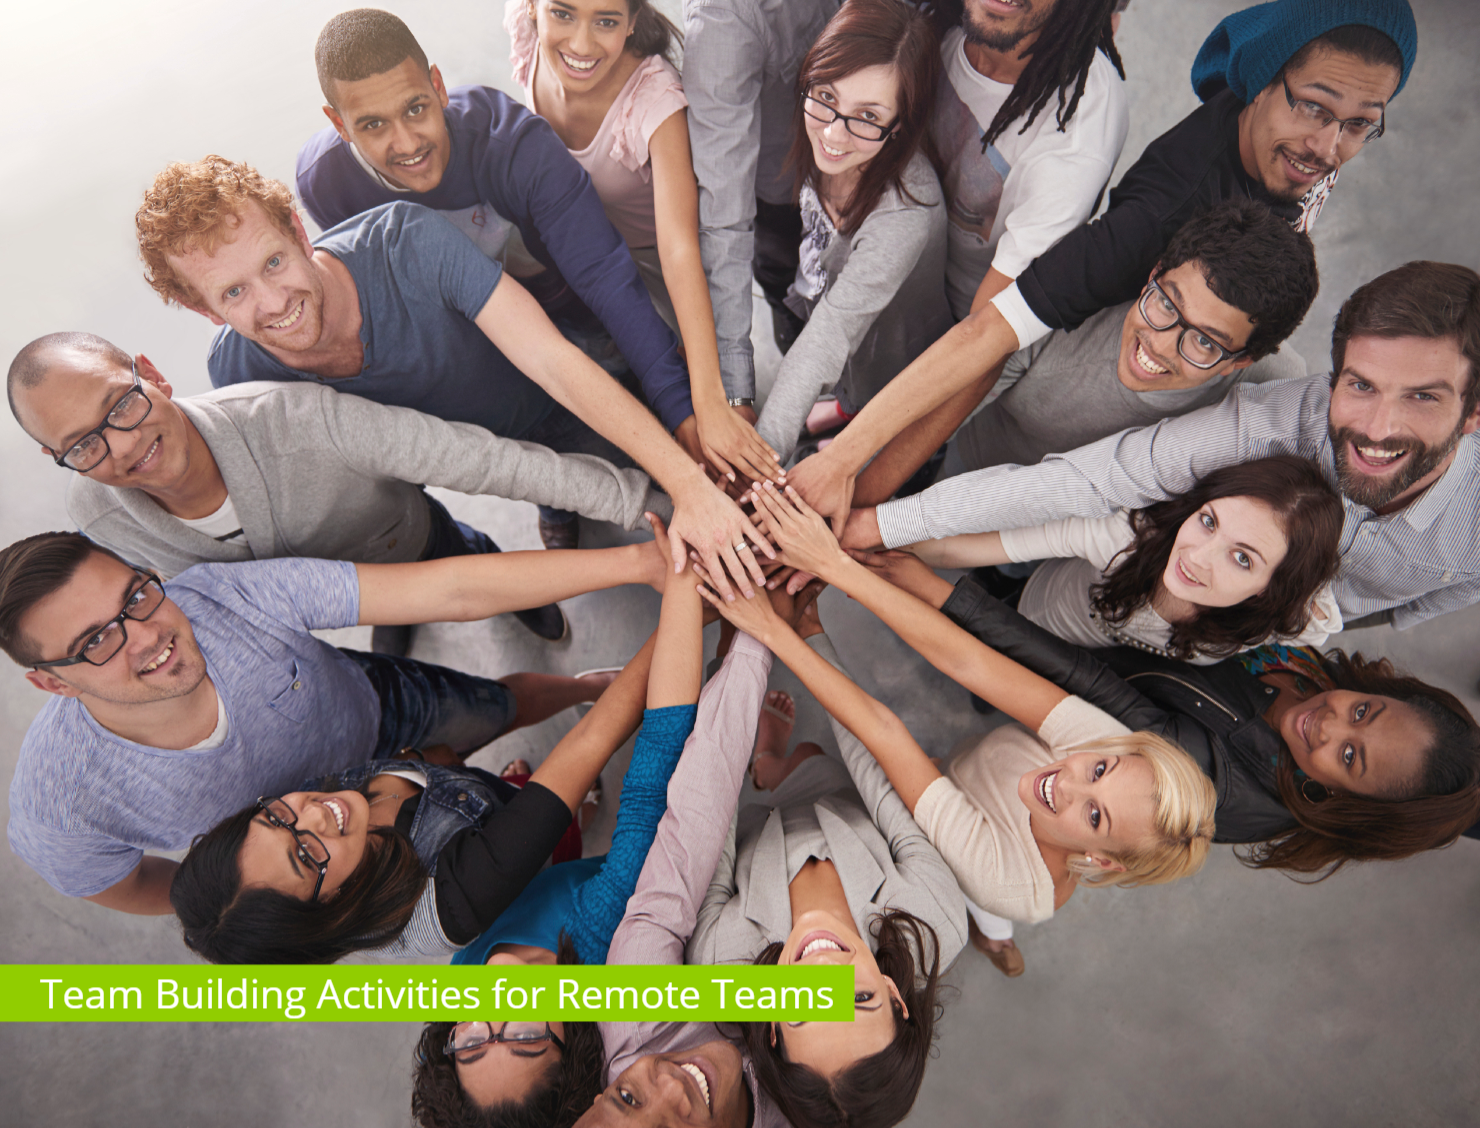 team building activity Learn how to create stronger, collaborative teams with this list of team building  activities designed to promote trust and communication.